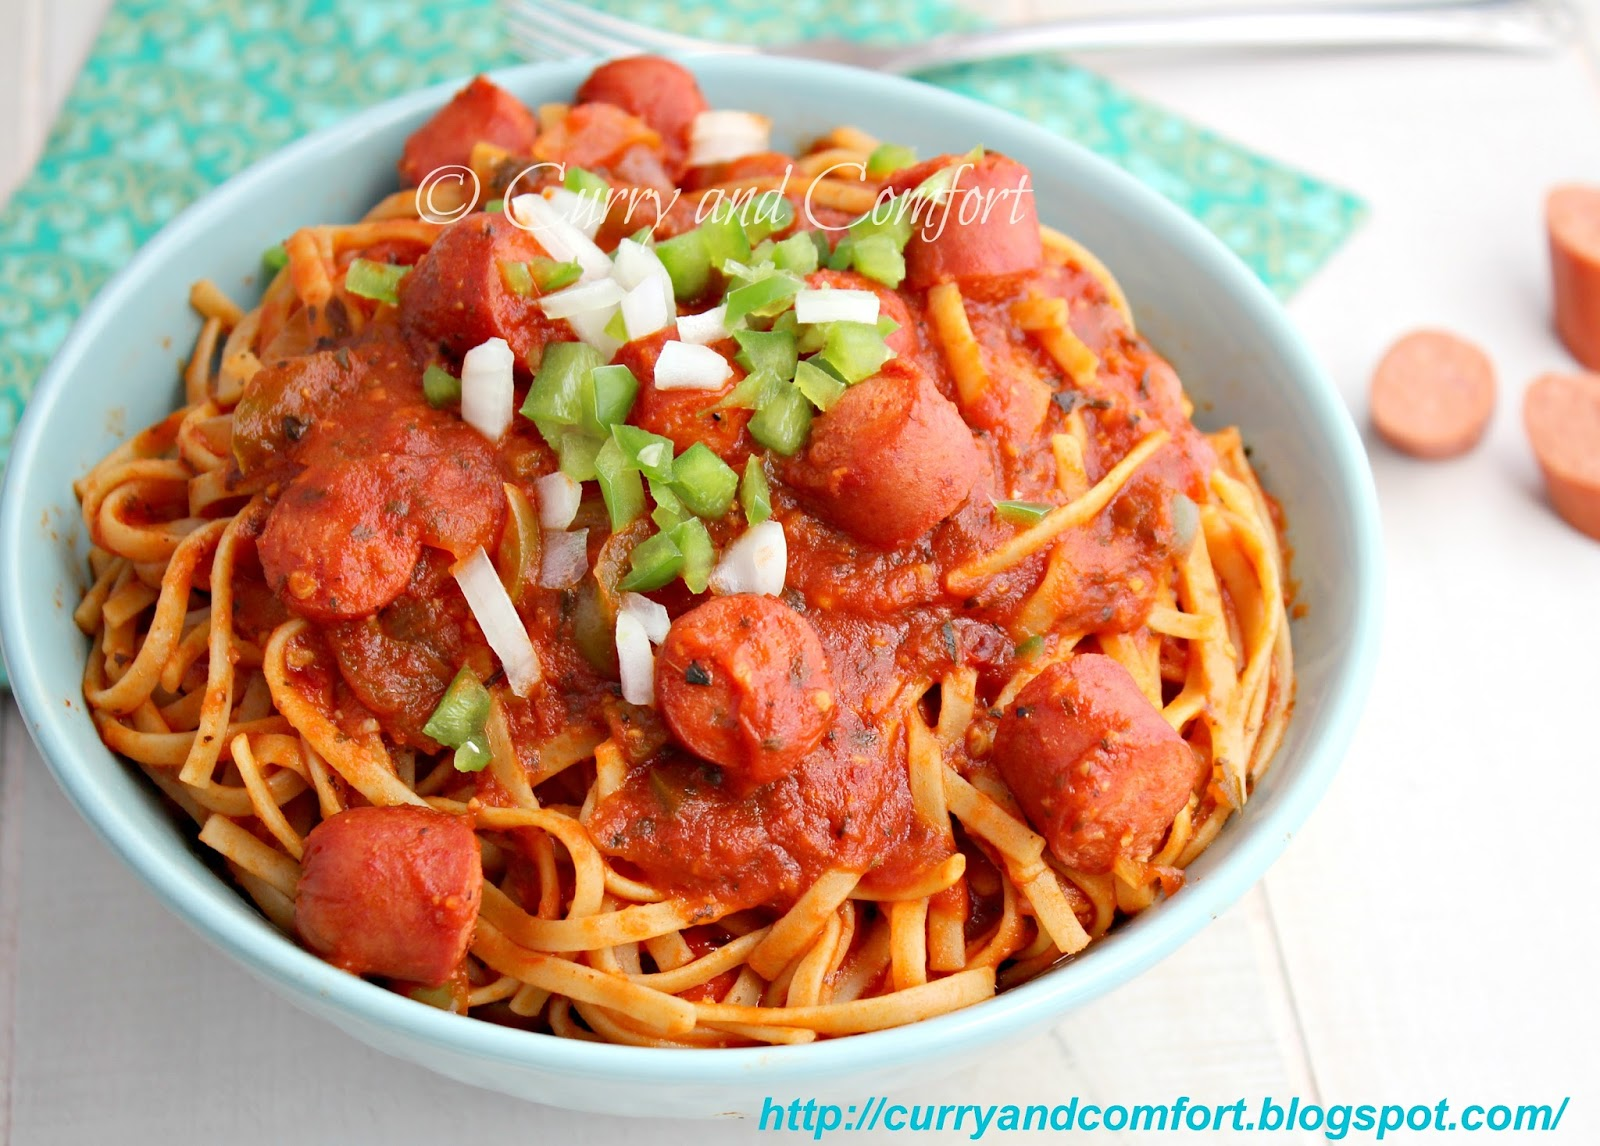 Feb 20,  · Spaghetti with Little Hot Dogs - The Big Bang Theory - Easy Cooking! - Duration: Chef Kendra Nguyen 47, views.